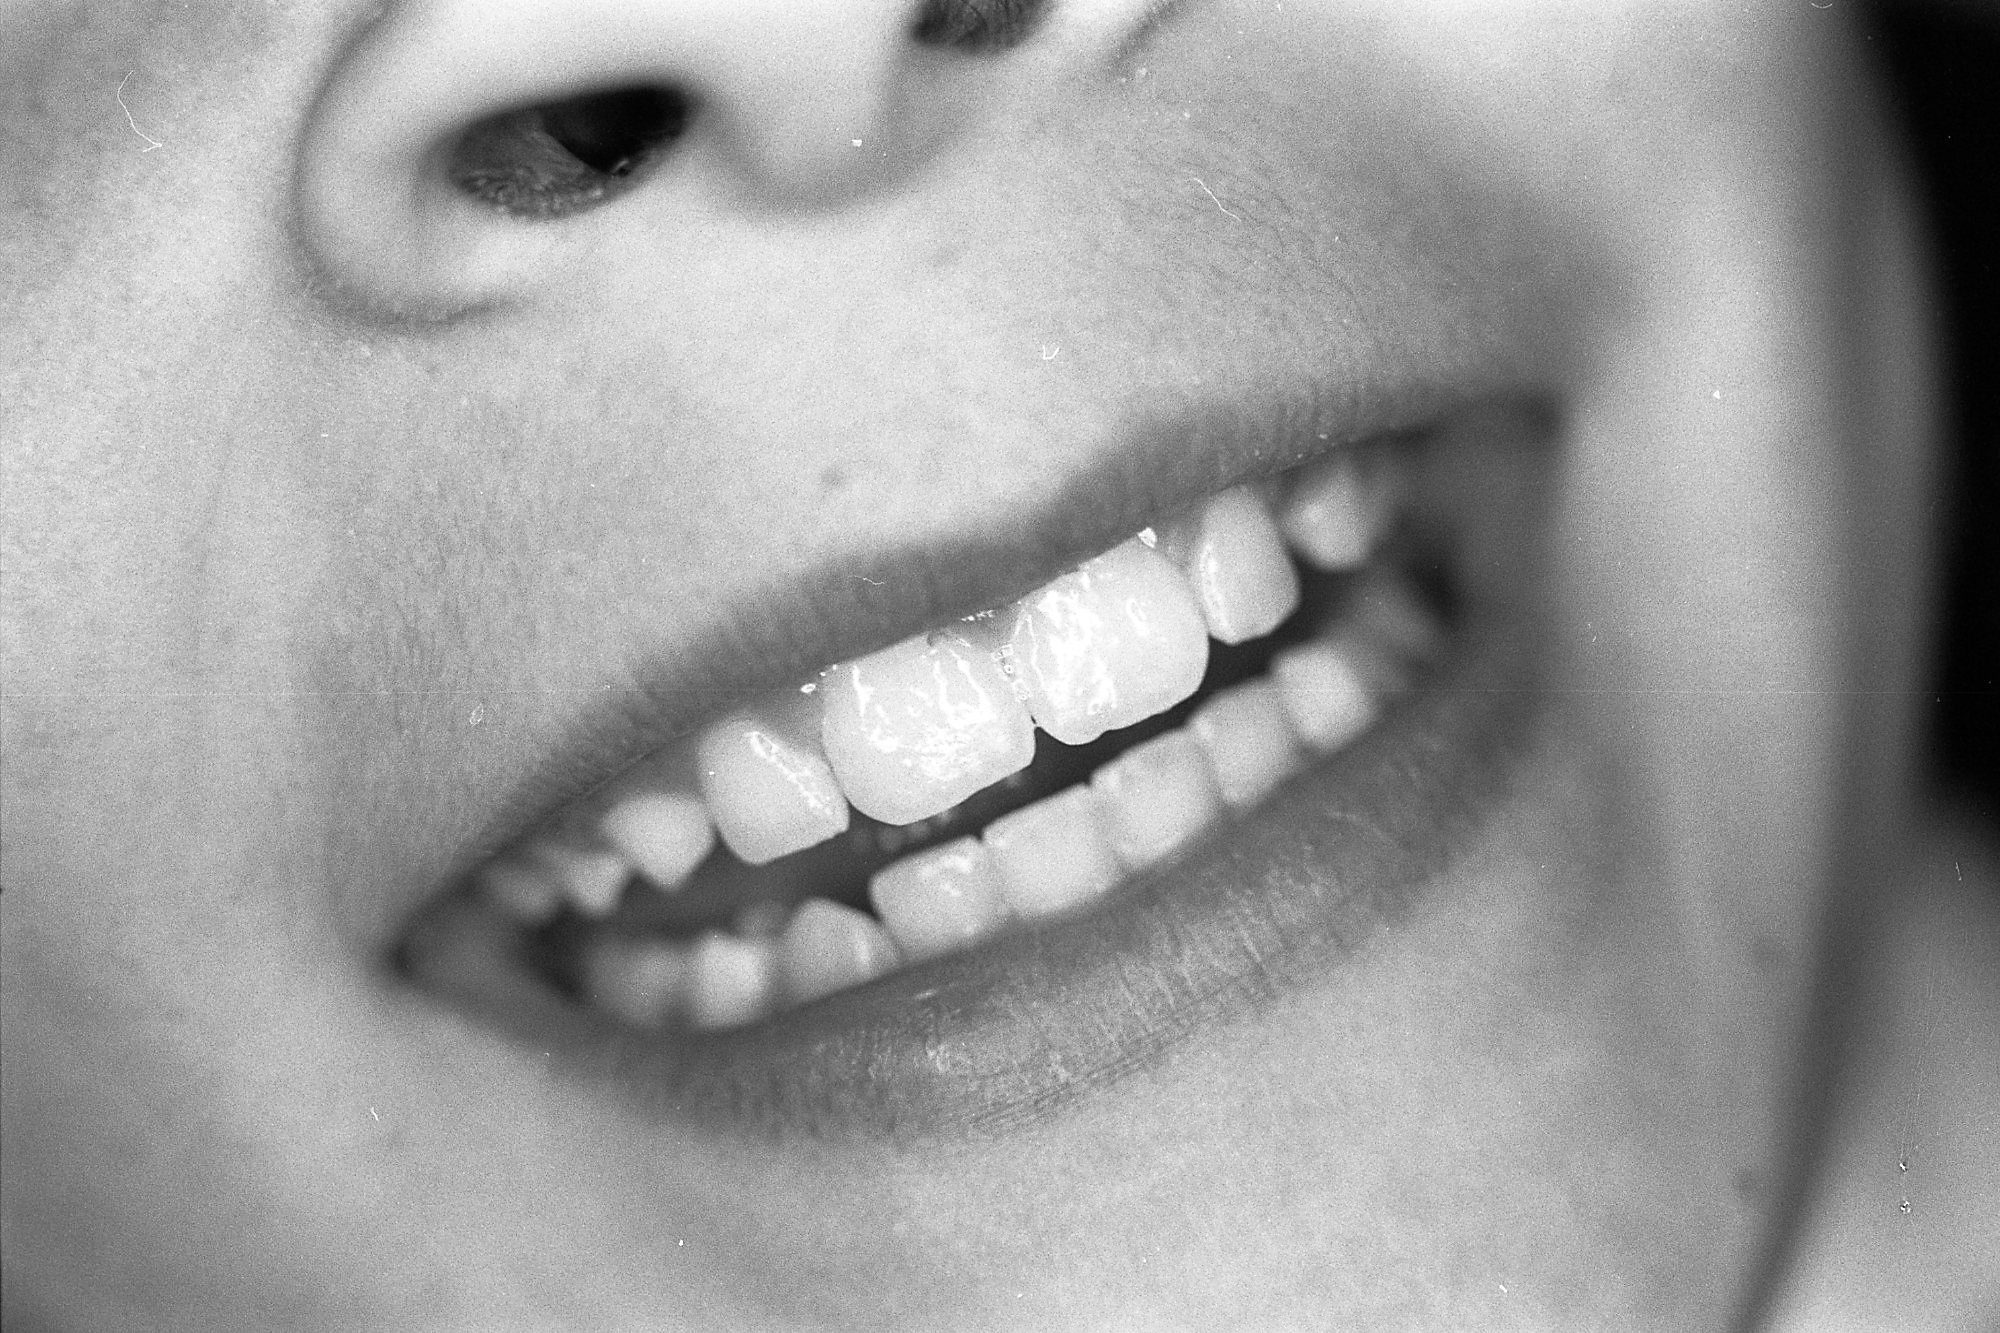 @calor_gas_terry Here's my son's #smile #ilfordphoto #fridayfavourites #smiles Taken with my OM2n on FP4+